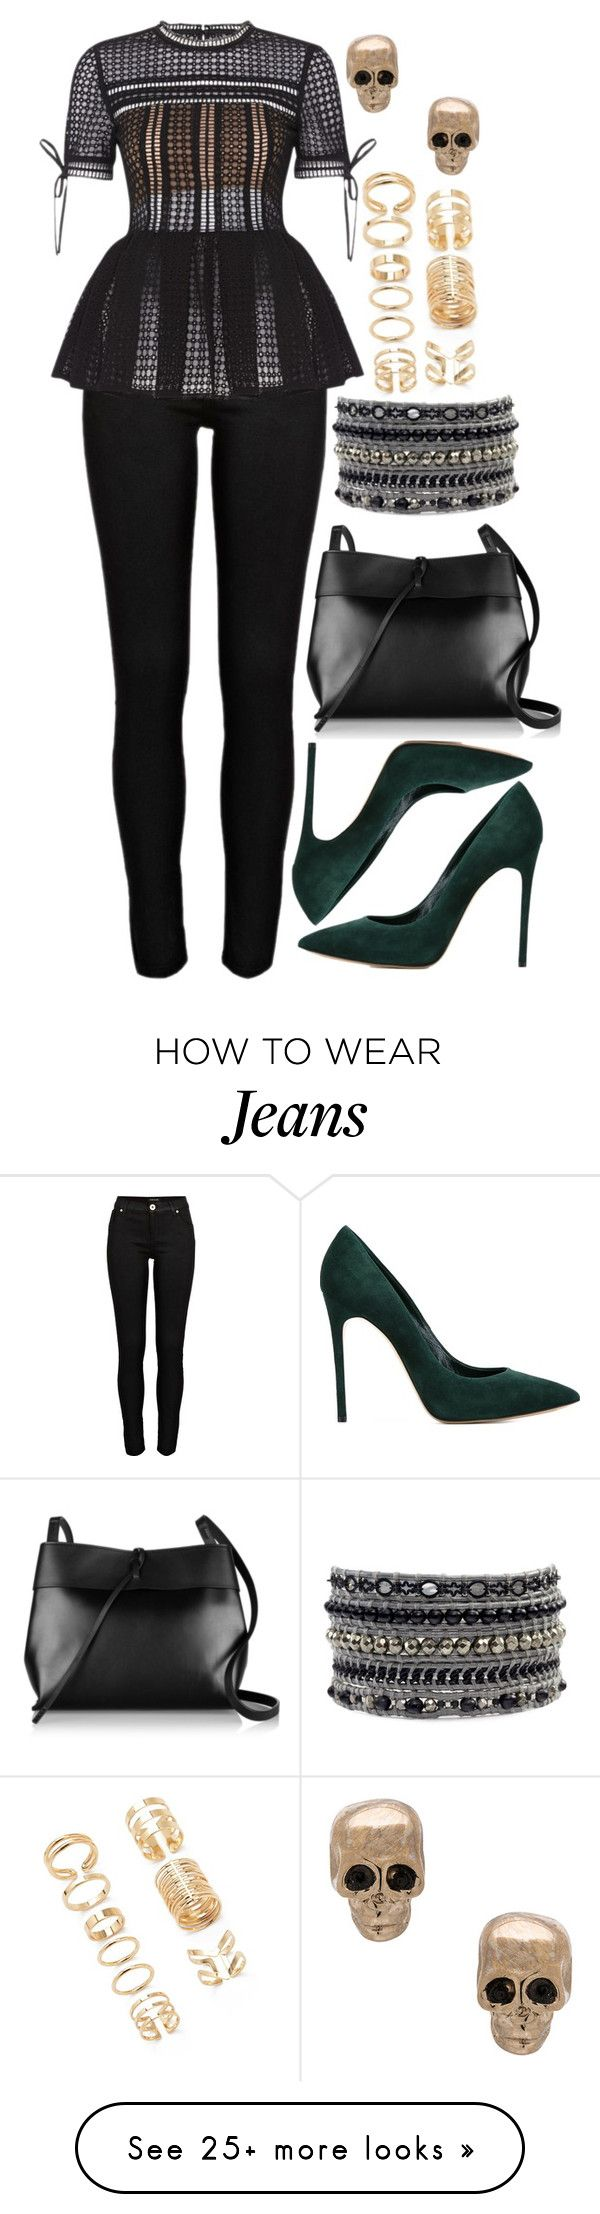 """1013."" by adc421 on Polyvore featuring River Island, Casadei, Kara, Forever 21 and Givenchy"